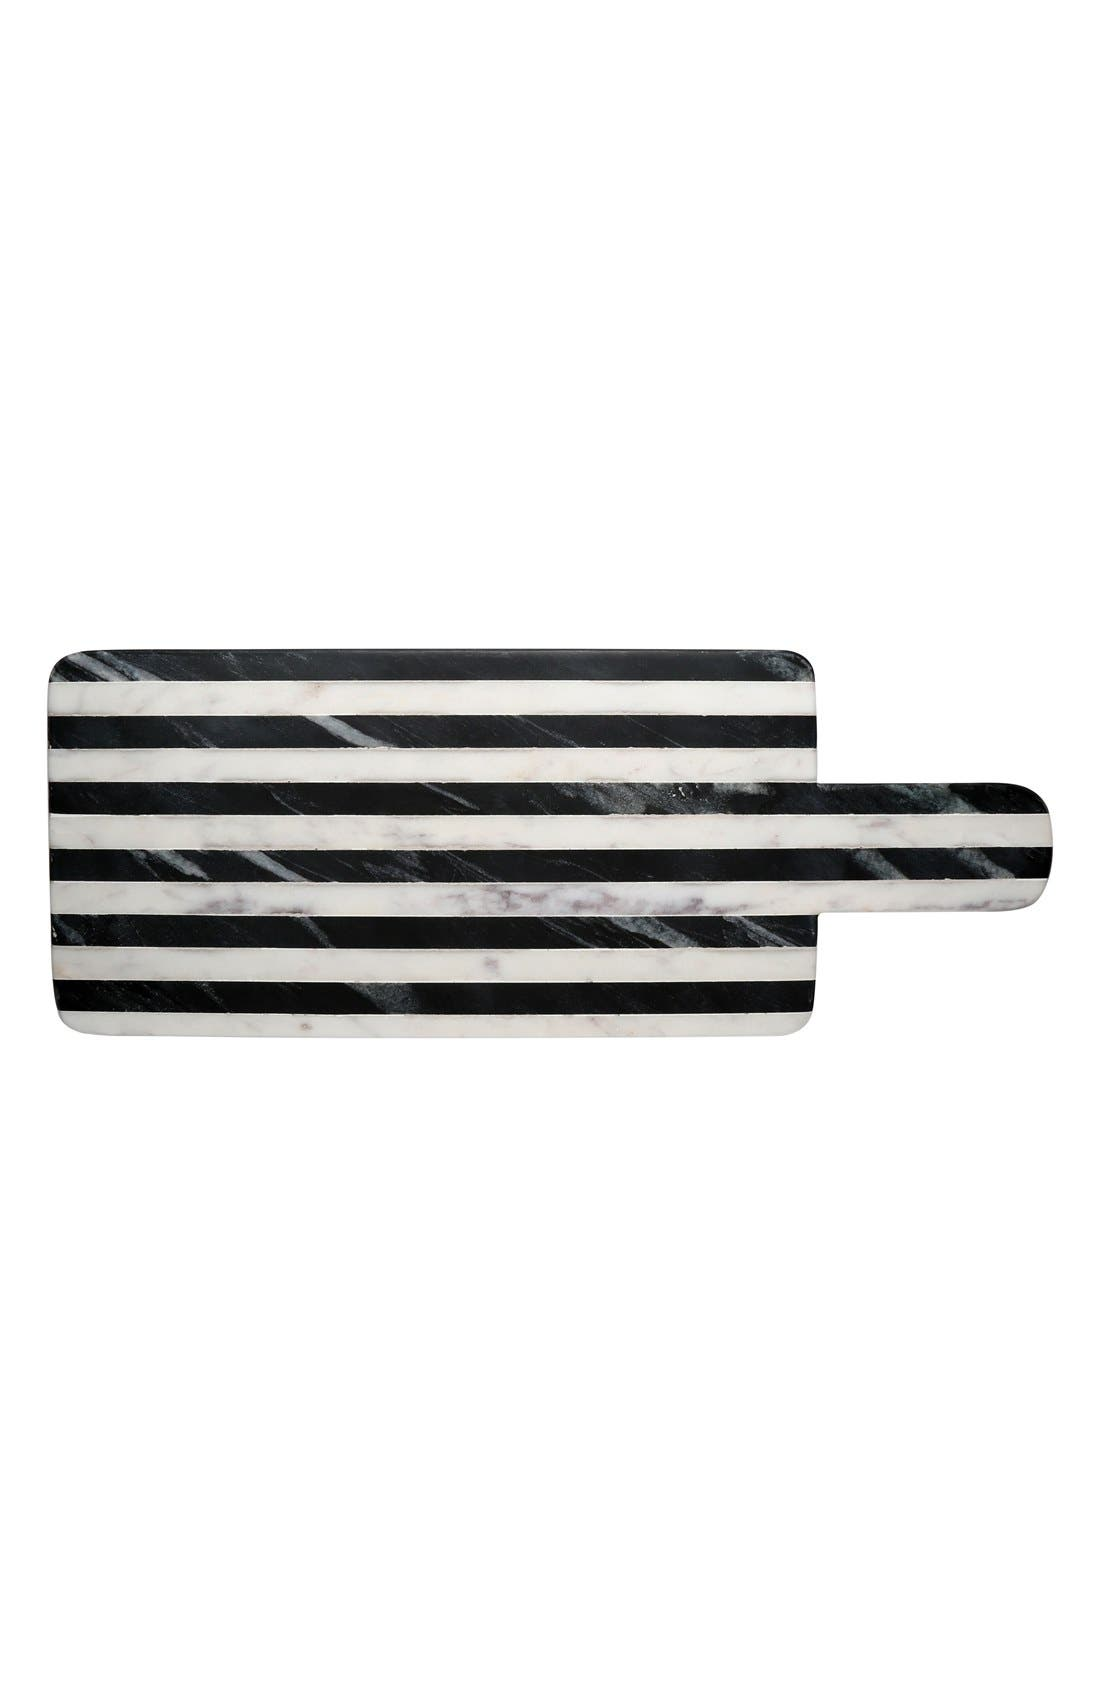 Marble Paddle Serving Board,                         Main,                         color, 001